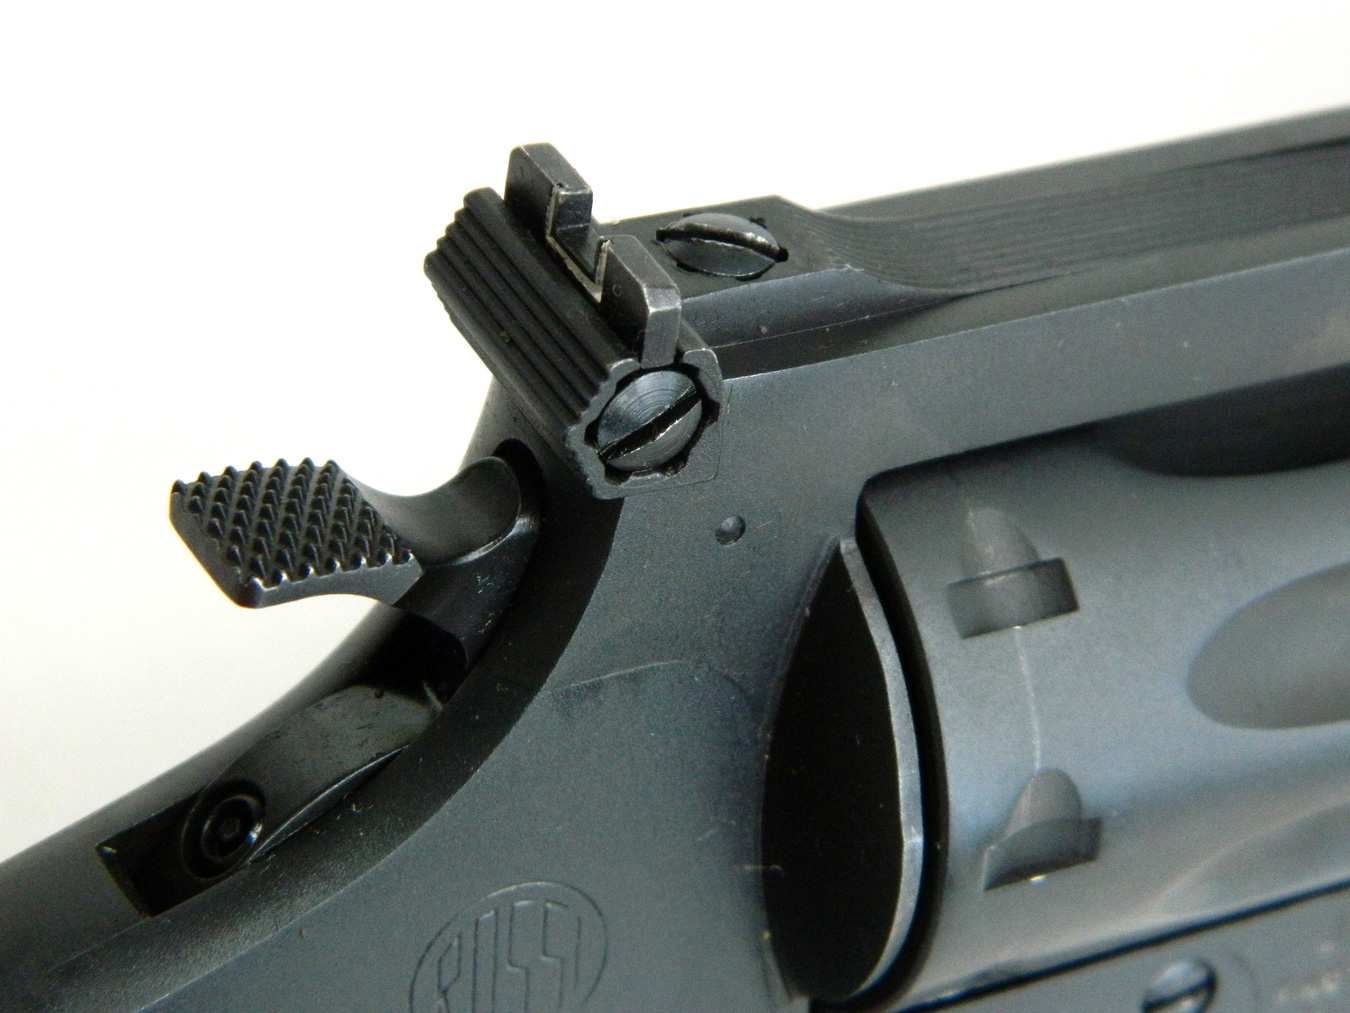 Rear blade sight on a revolver